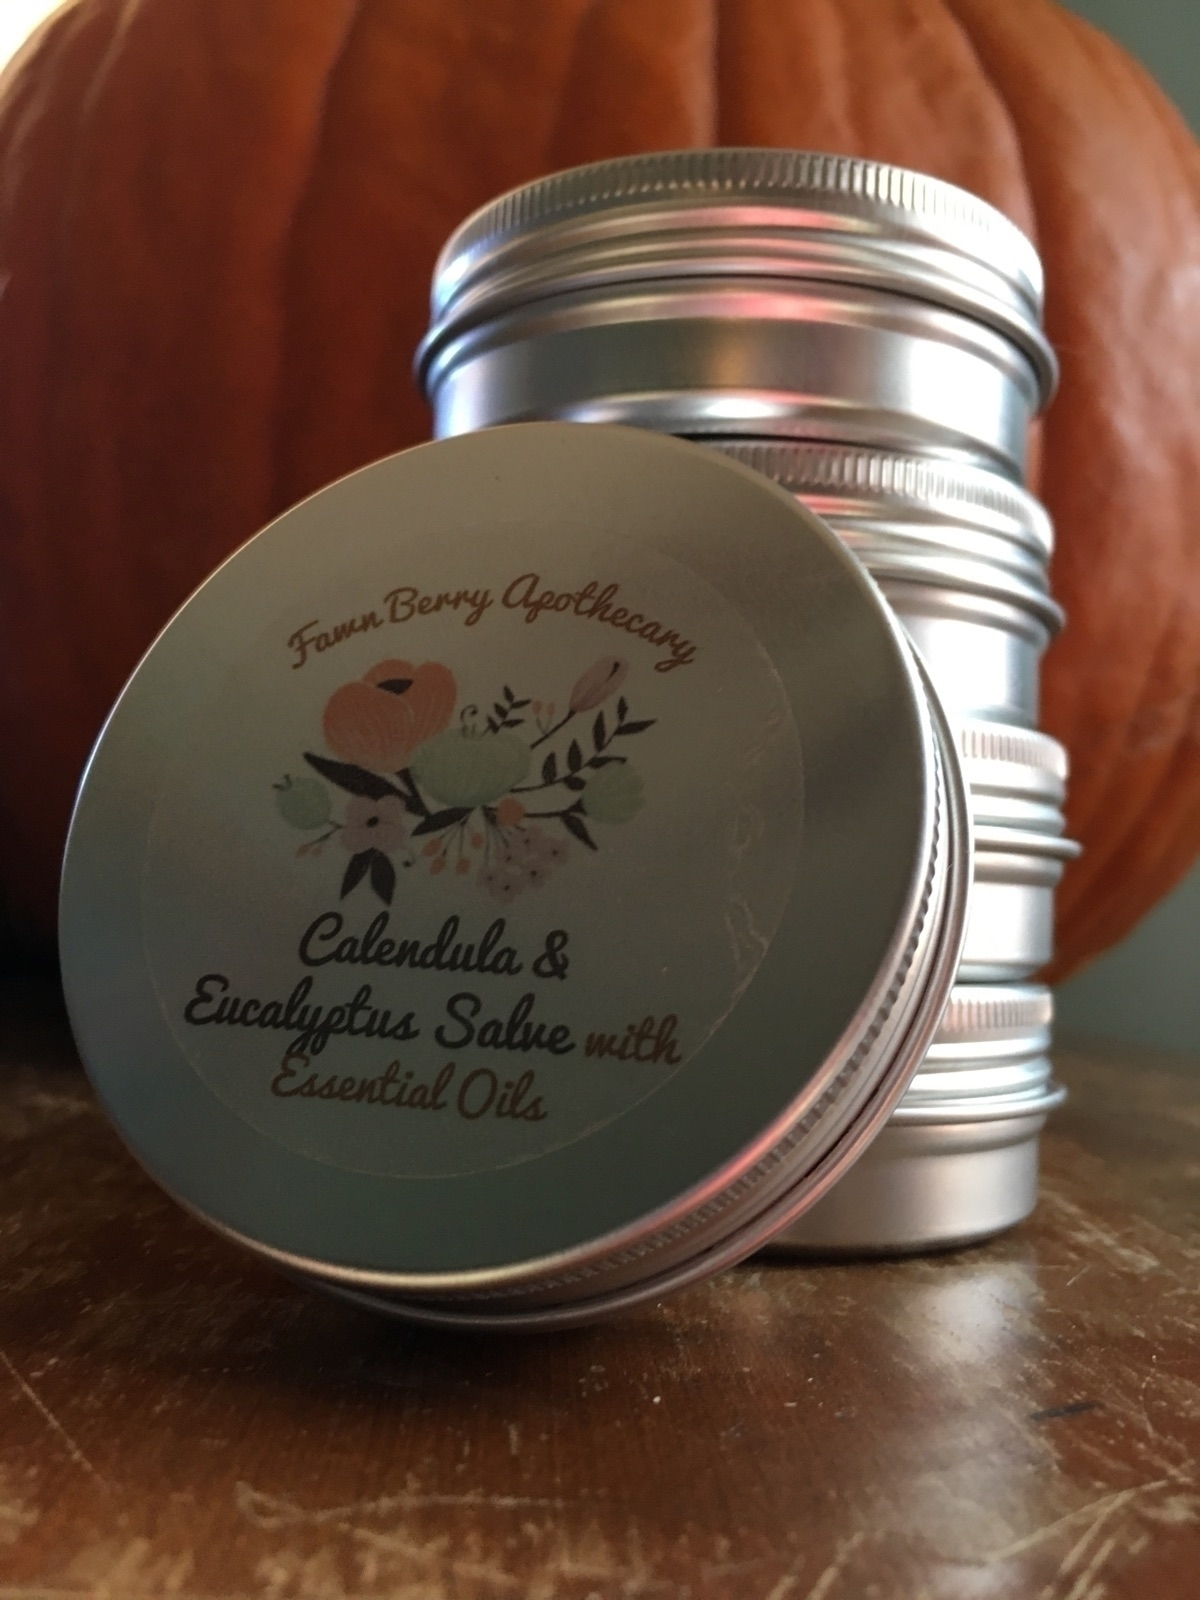 Salve incredibly healing ointme - fawnberryapothecary | ello